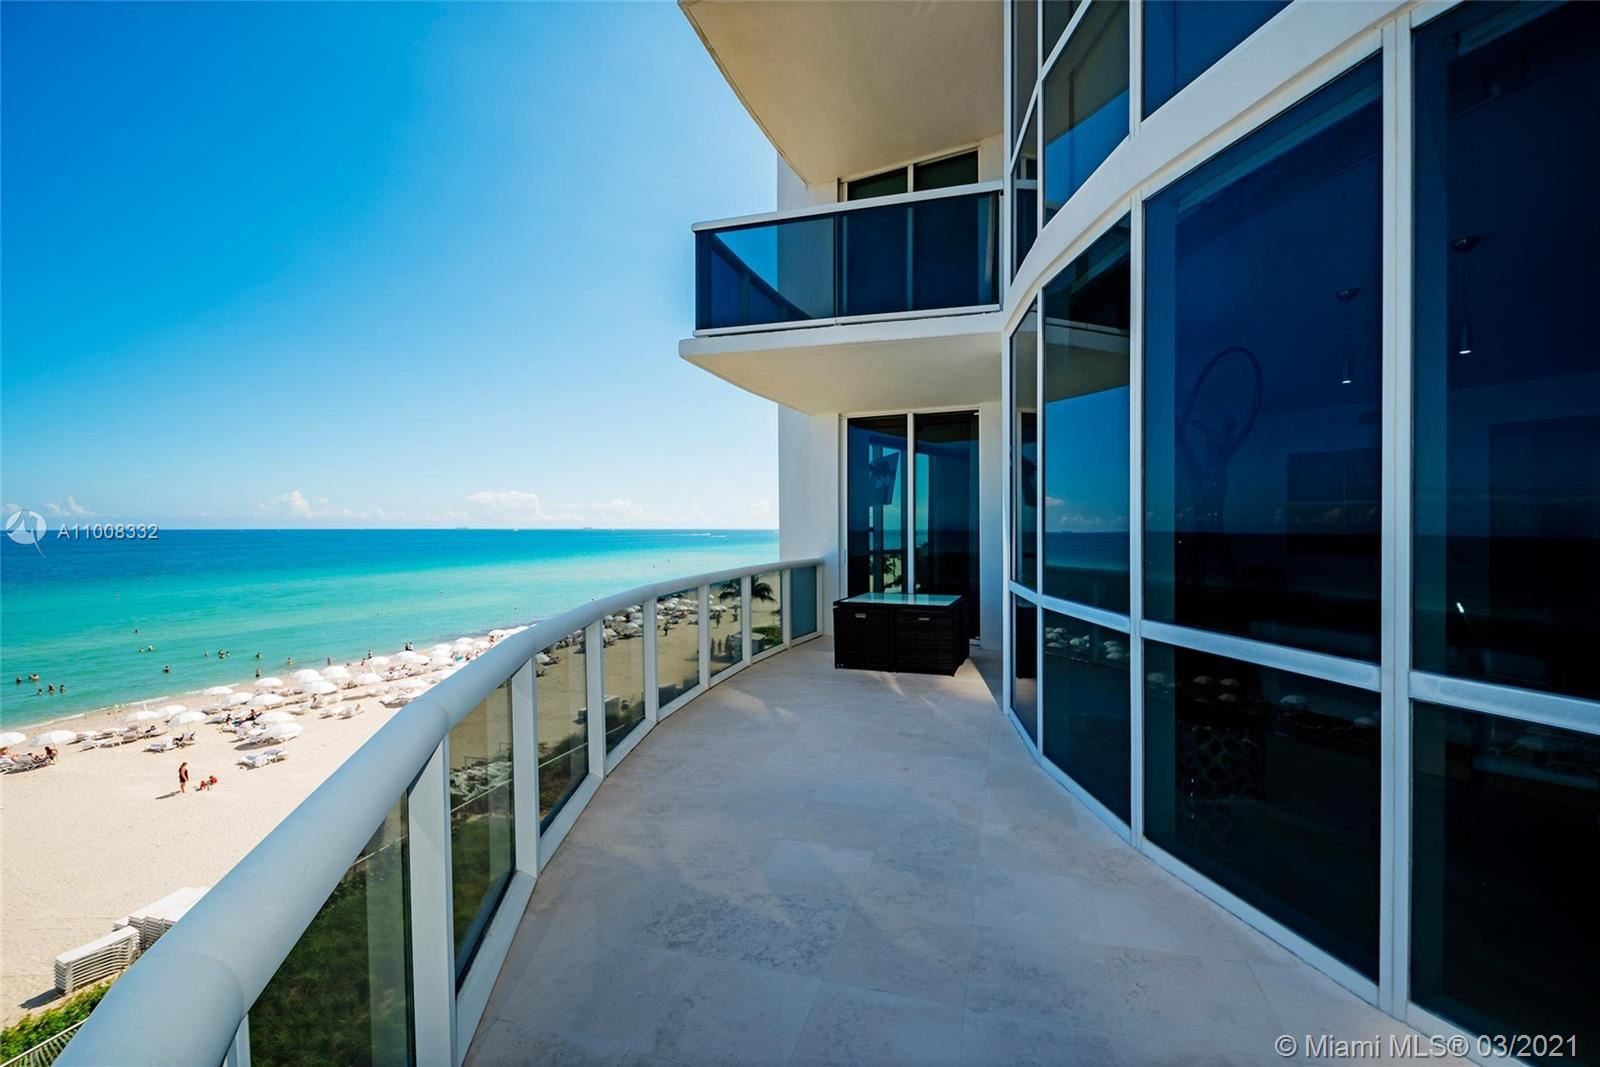 18101 Collins Ave #609, Sunny Isles, FL 33160 - #: A11008332